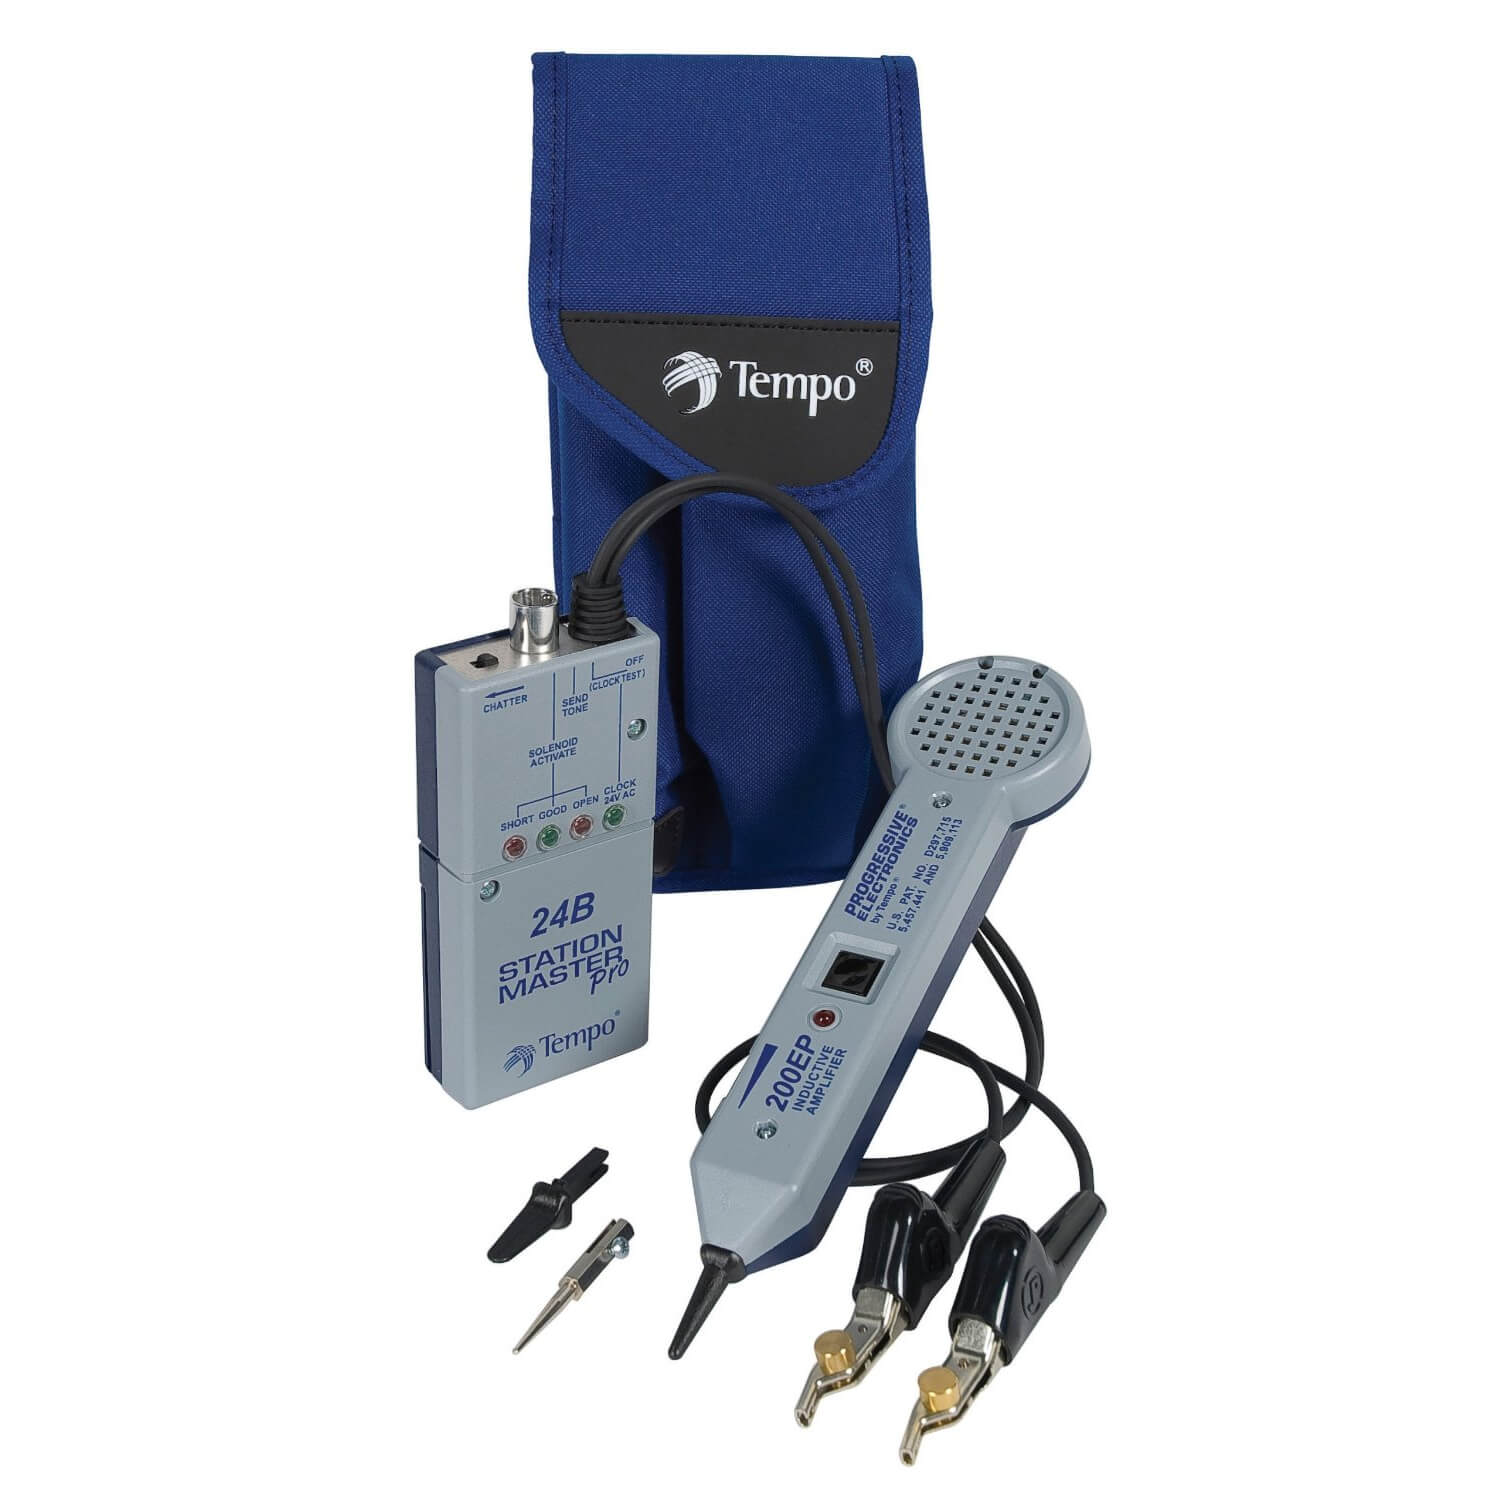 Tempo 24BK Irrigation Solenoid Chatterbox Test Kit